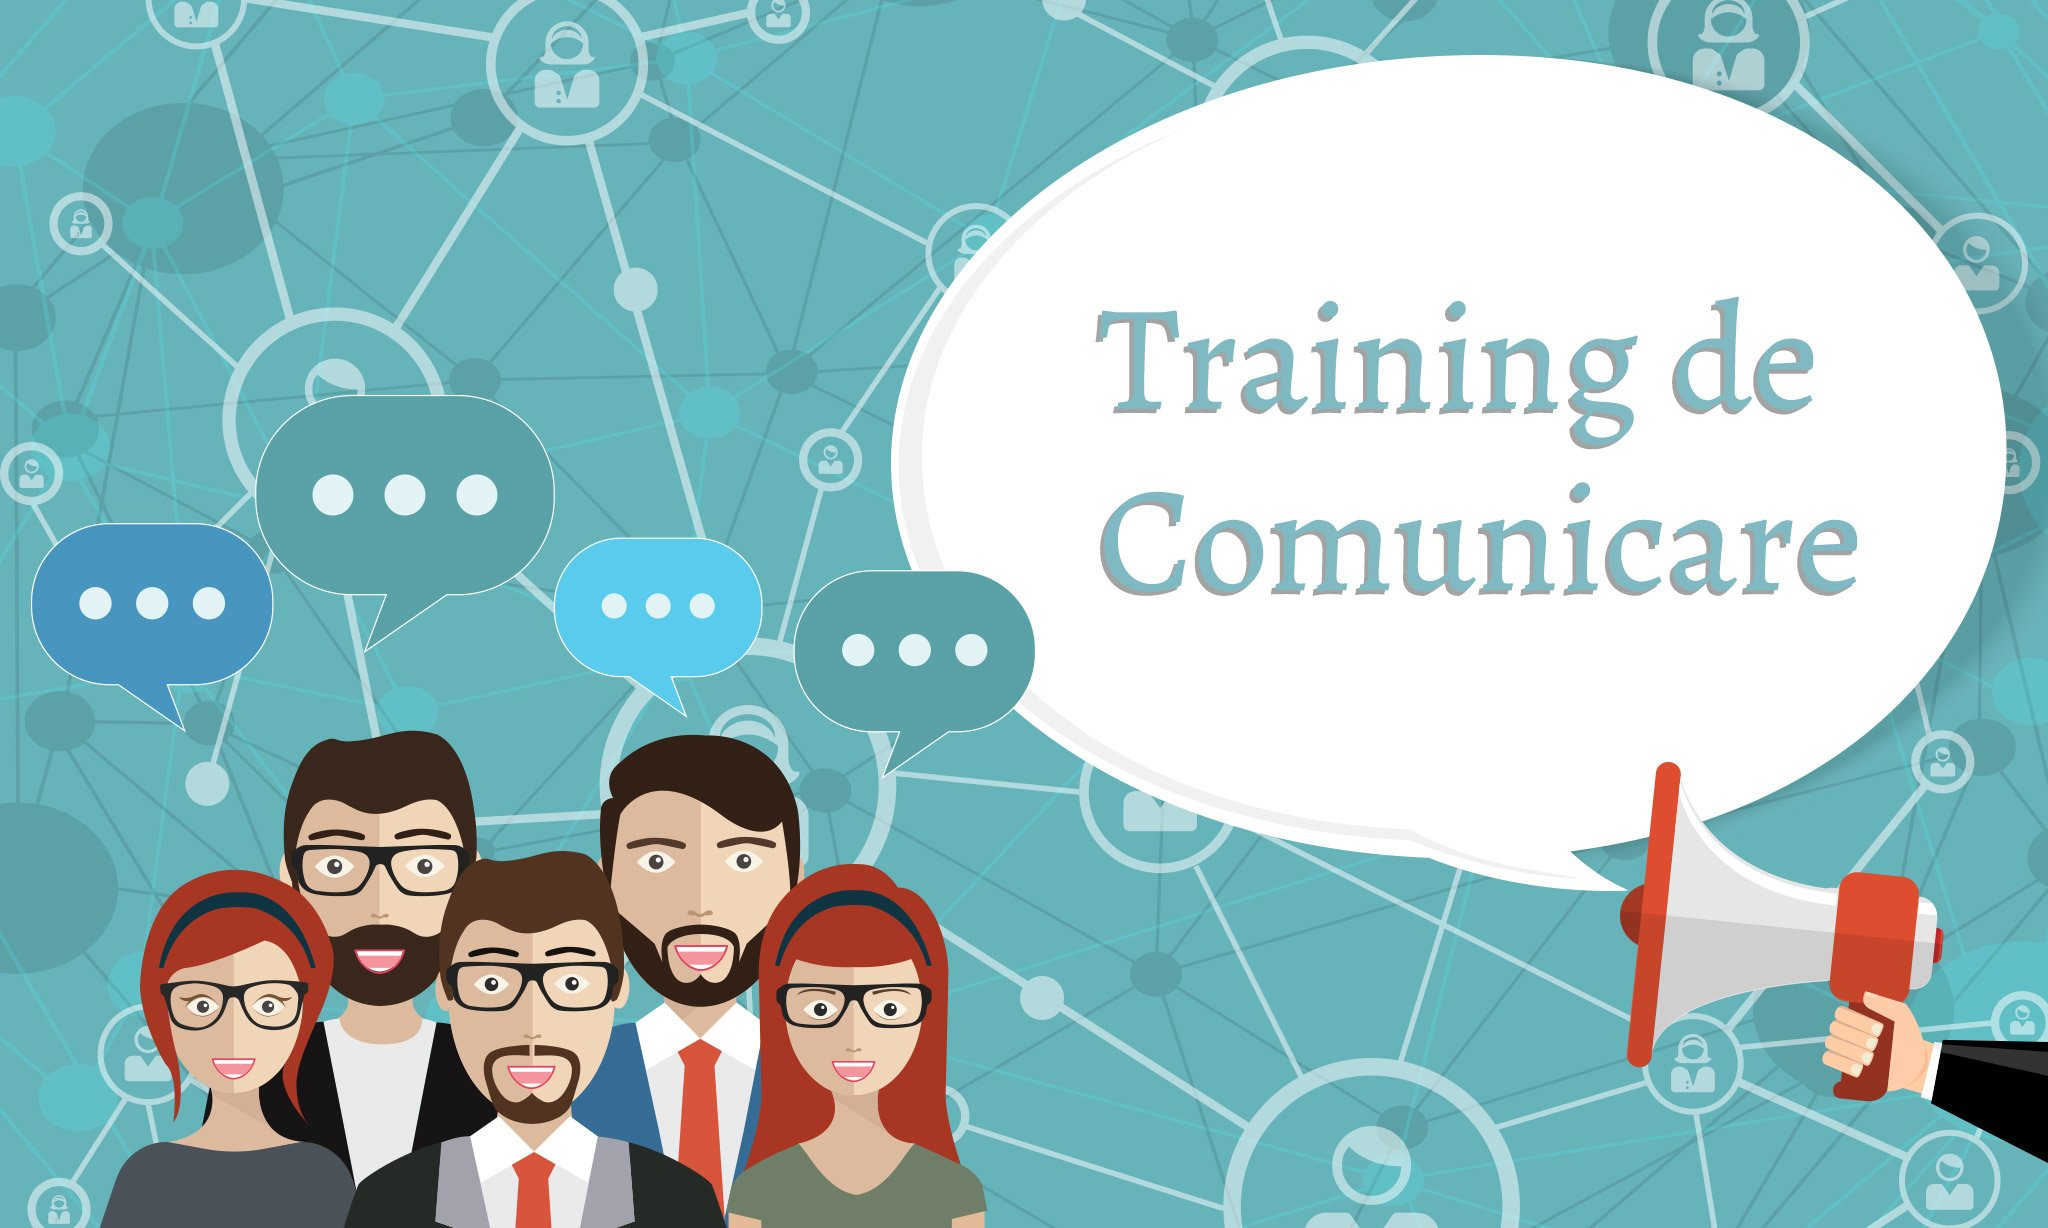 Training de Comunicare